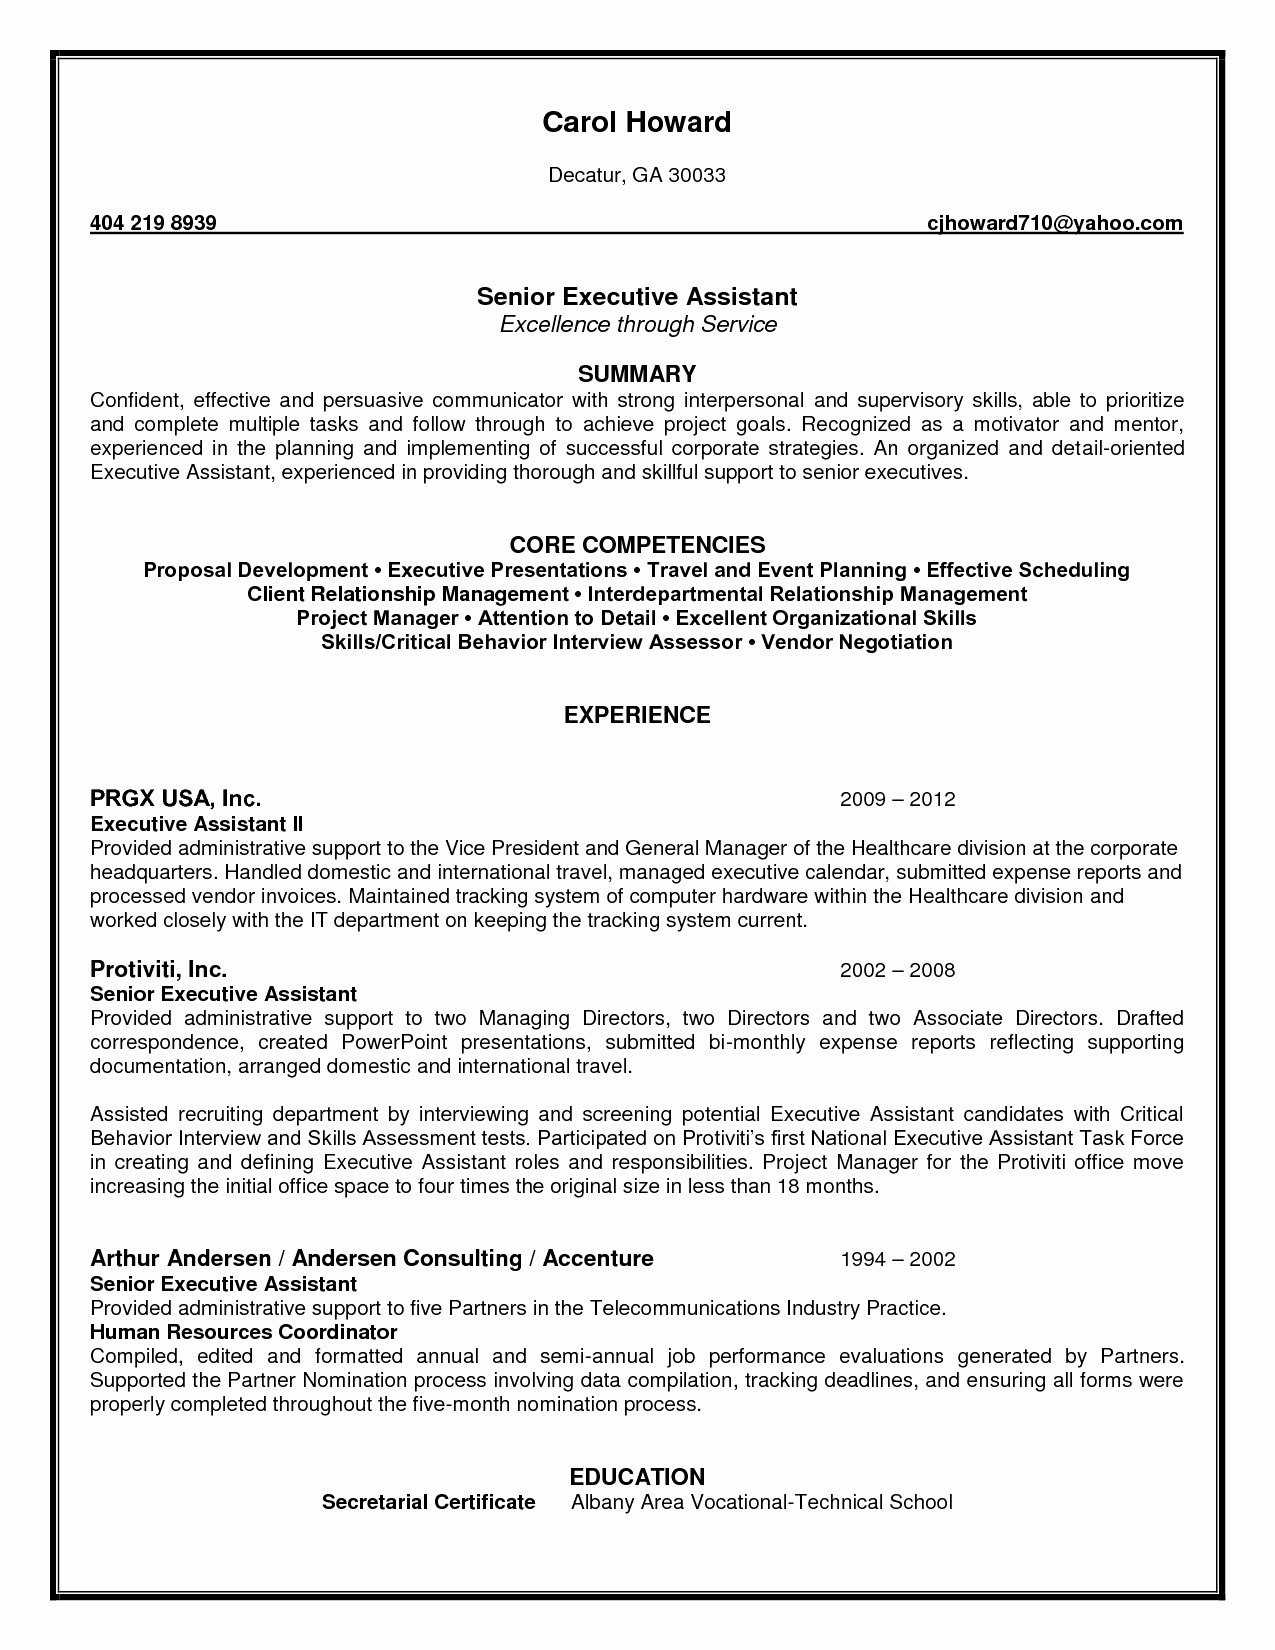 Coordinator Skills Resume - Executive assistant Resumes Unique Resume Template Executive